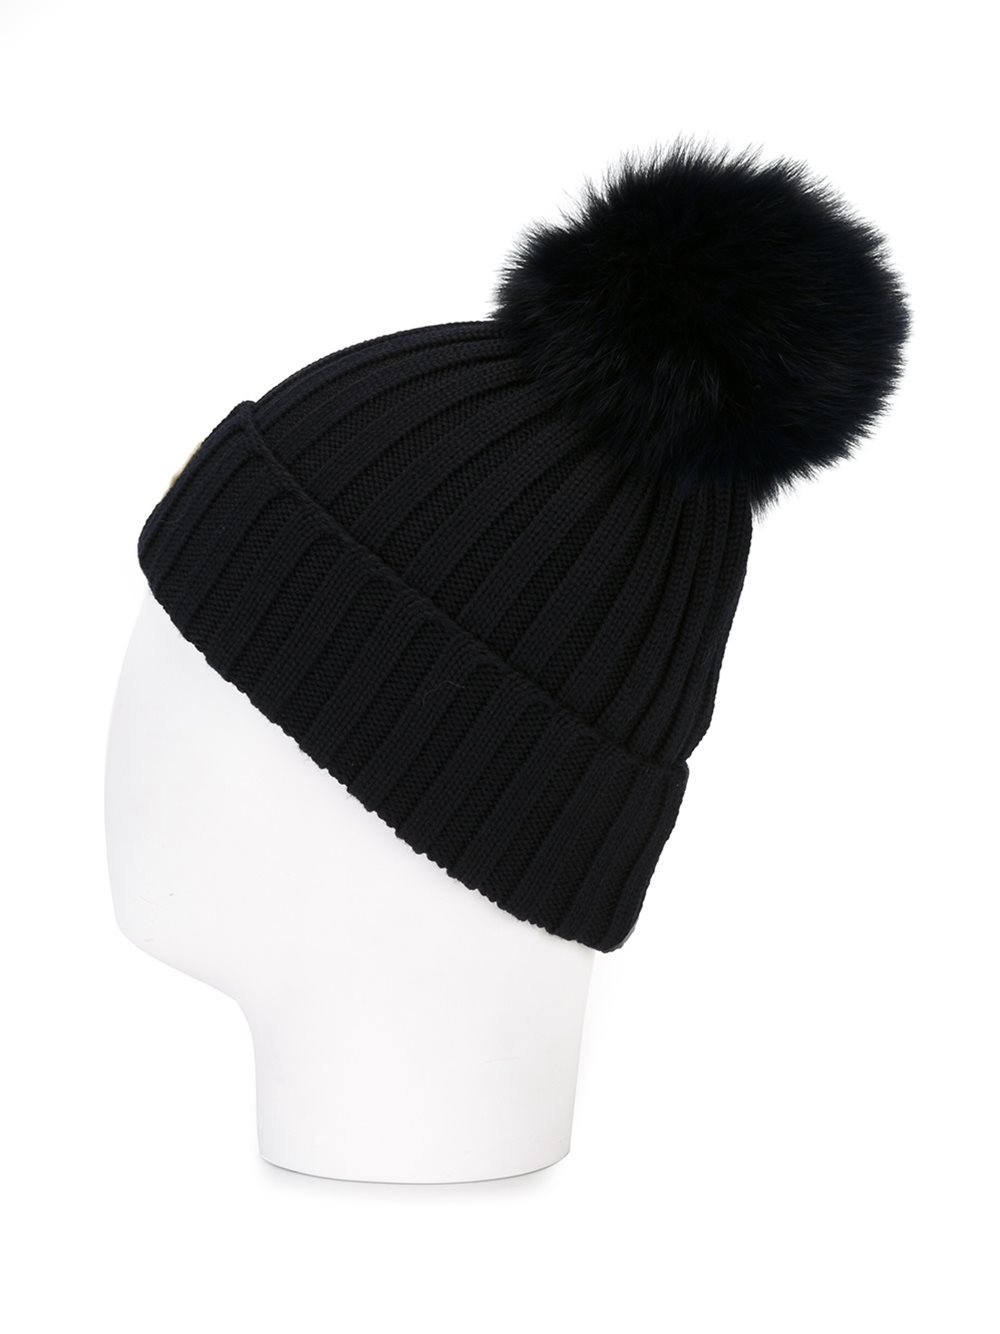 moncler barretto knit hat with pom pom in black lyst